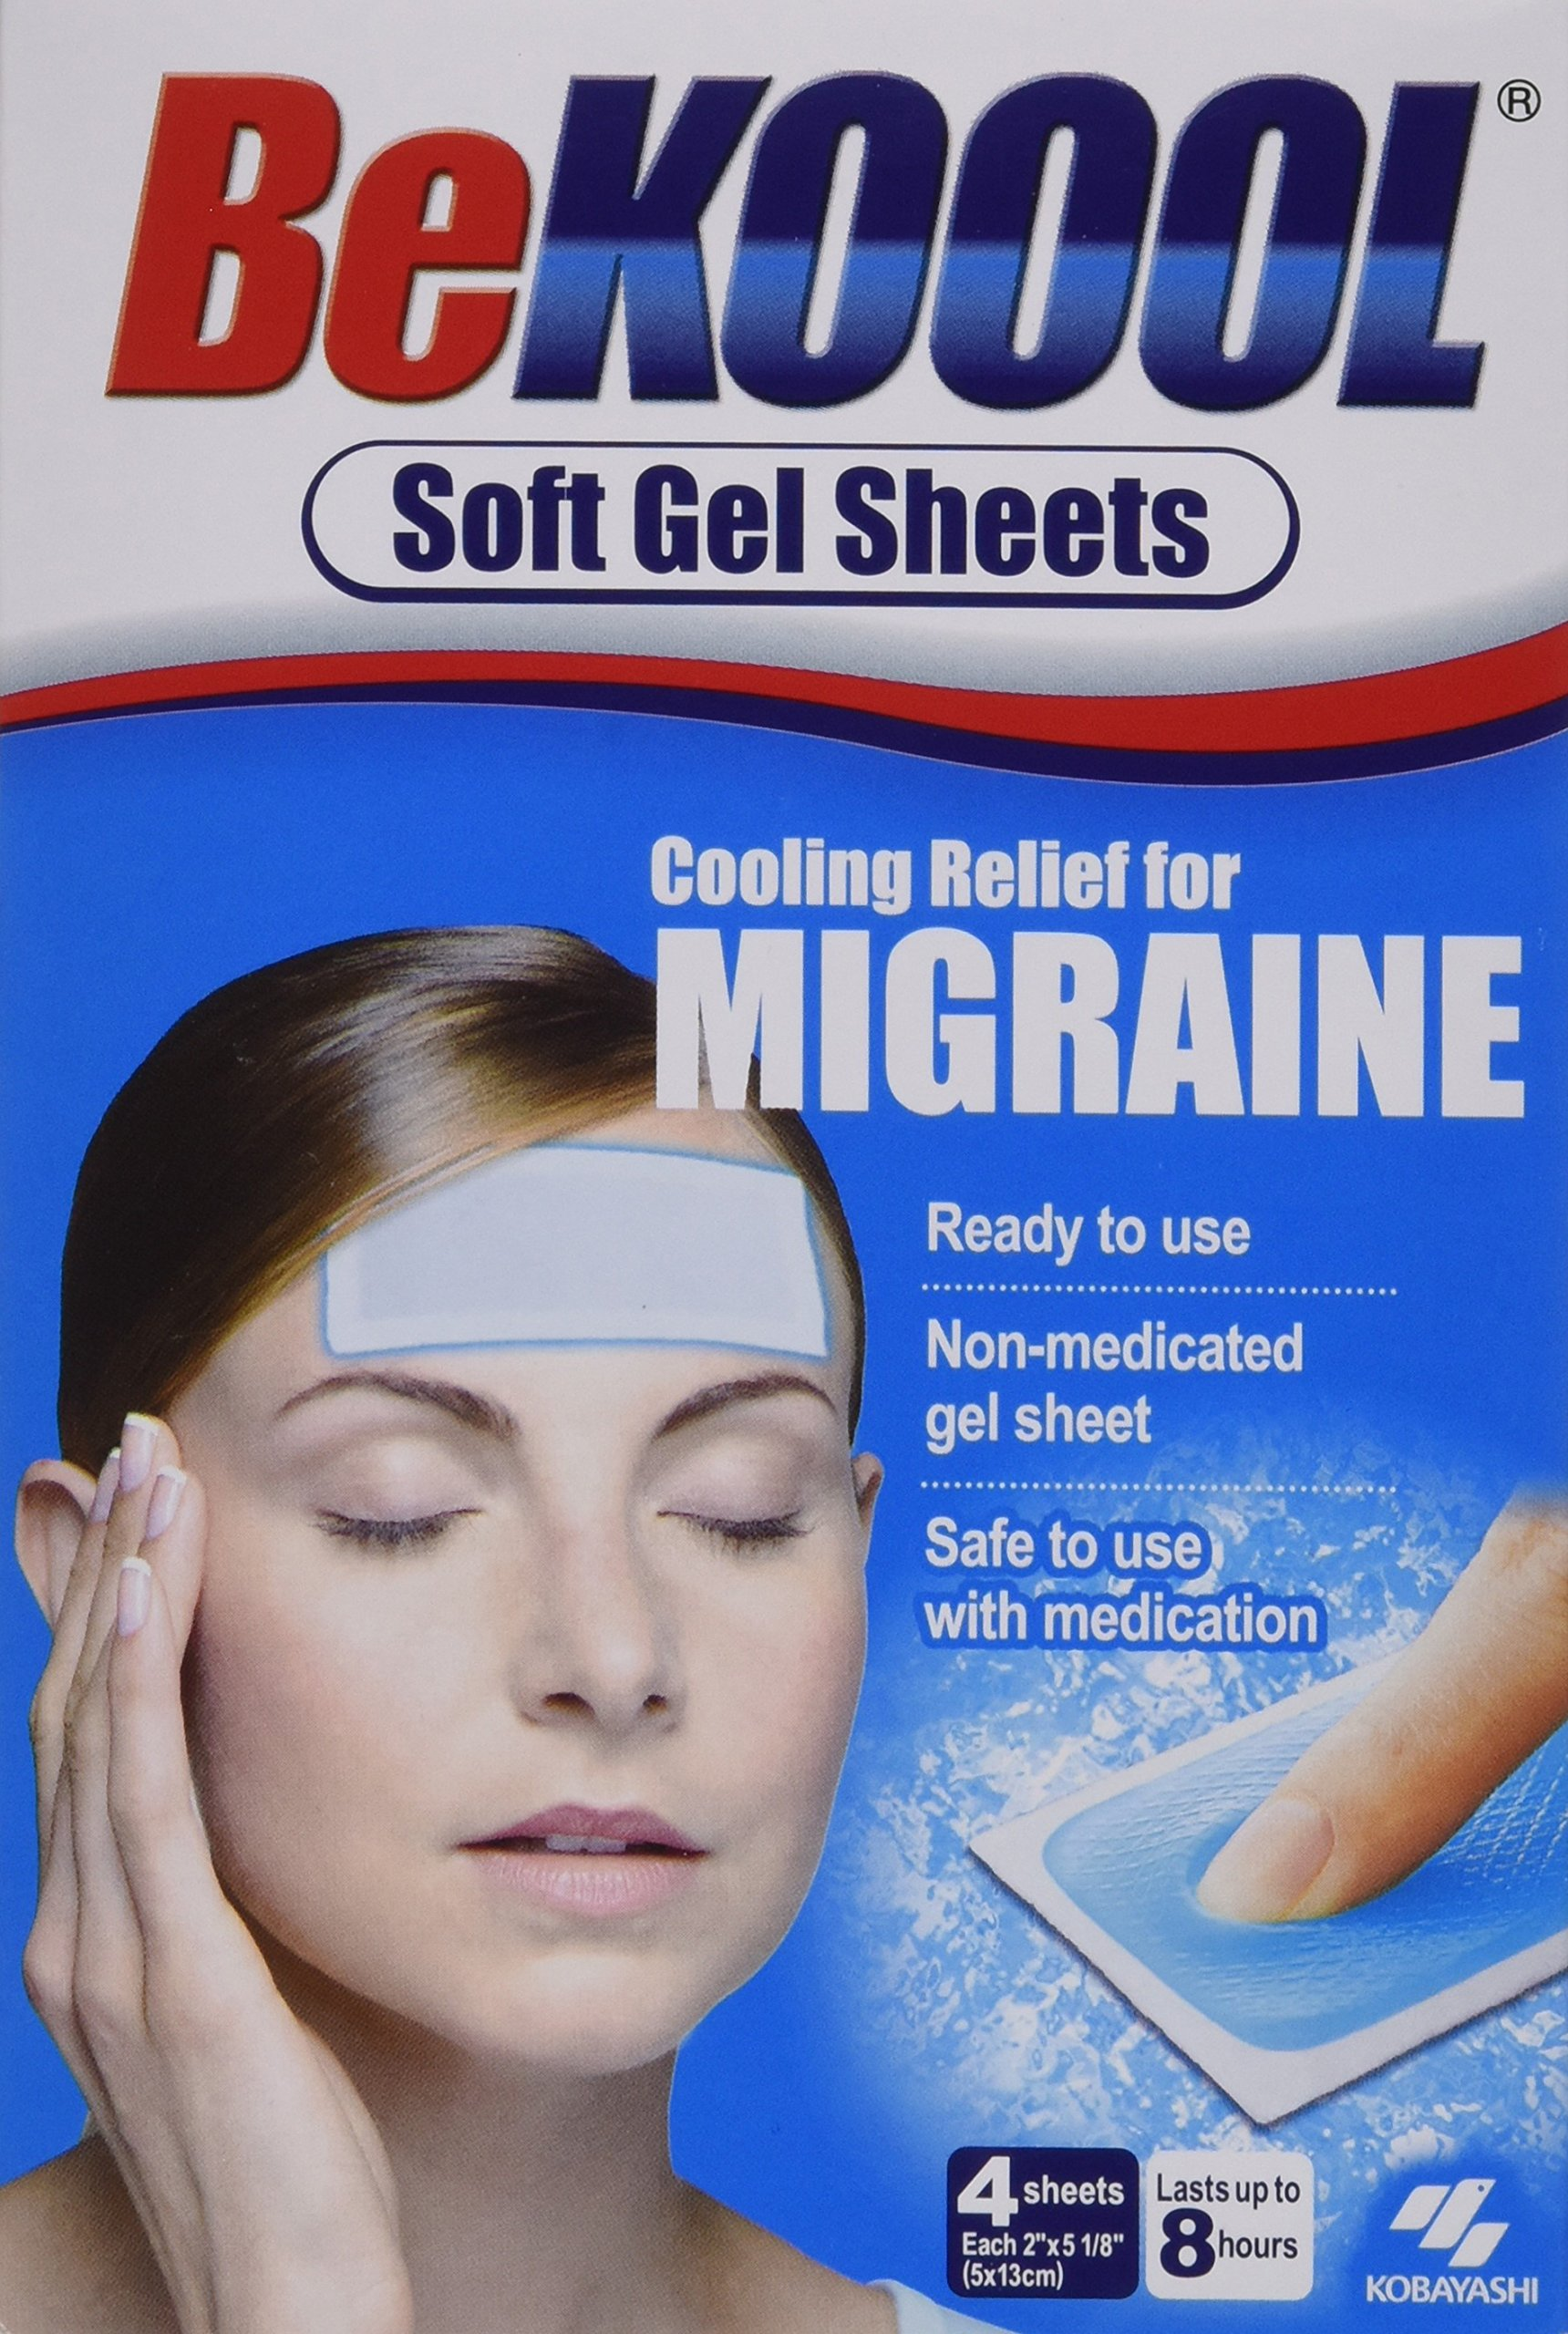 Be Koool Cooling Relief for Migraine Soft Gel Sheets 4 Each by BeKoool (Image #1)